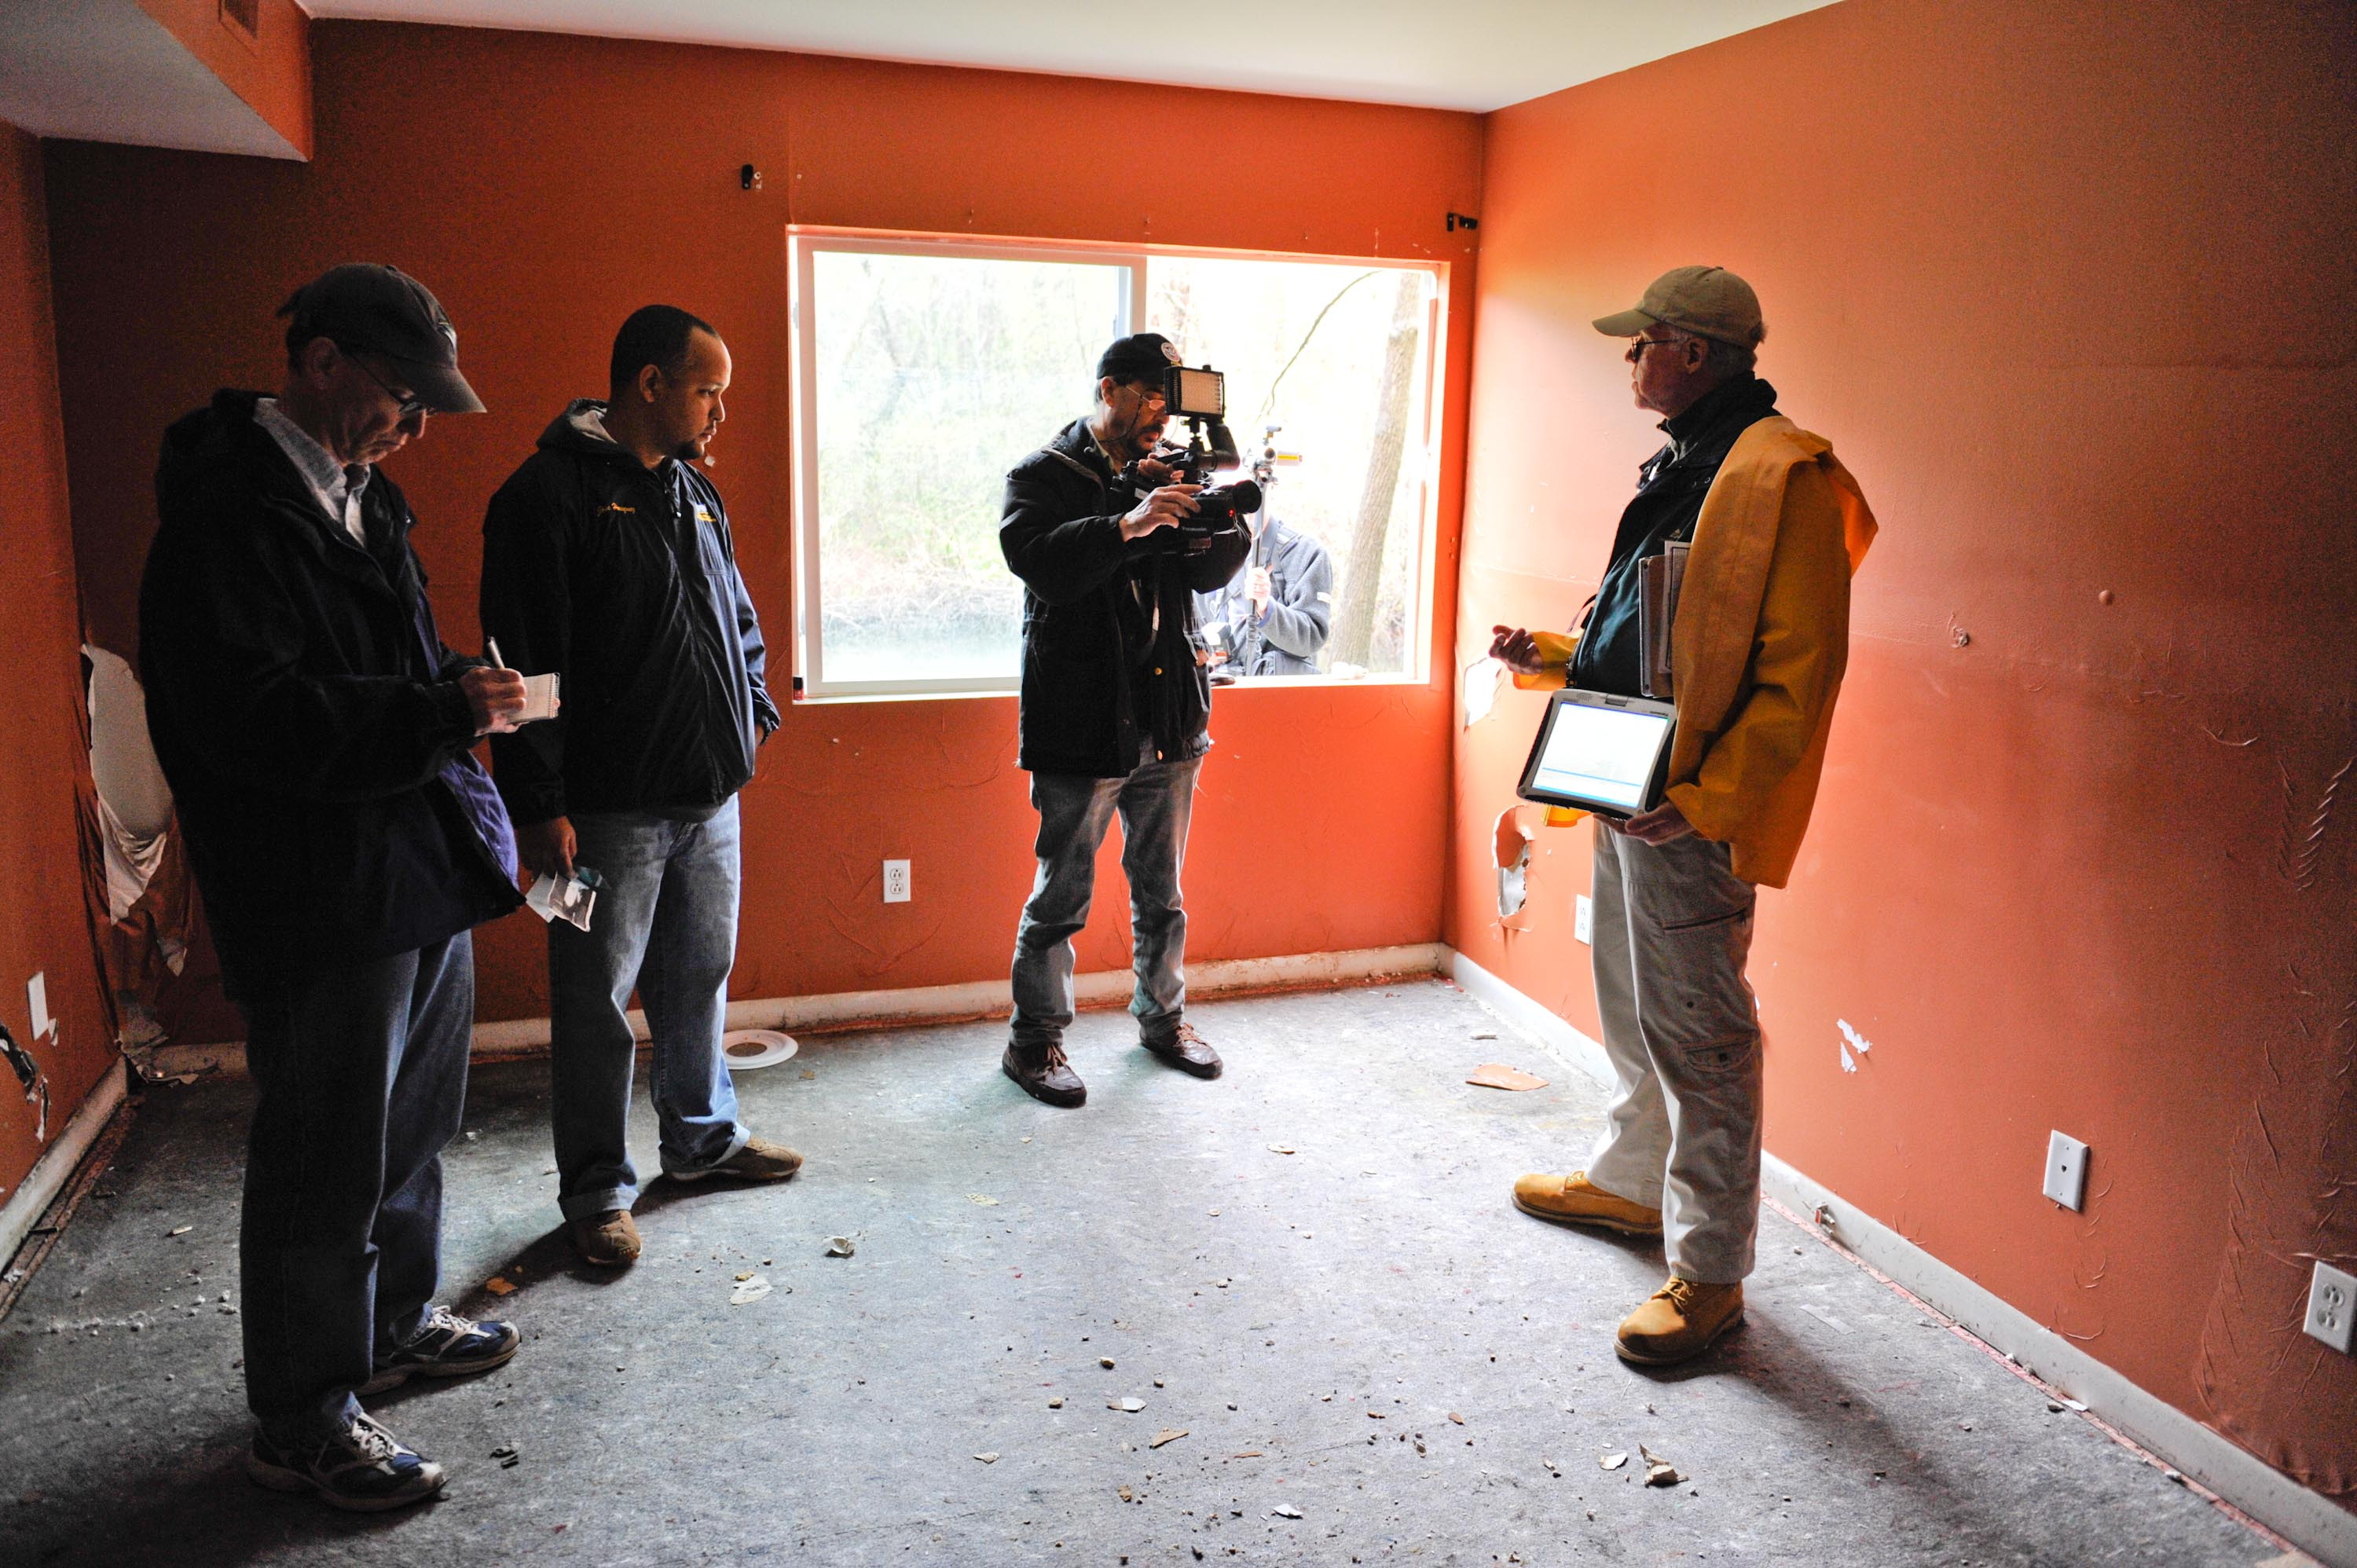 https://upload.wikimedia.org/wikipedia/commons/3/3a/FEMA_-_43623_-_Home_inspectors_being_recorded_on_video_by_the_media_in_Rhode_Island.jpg